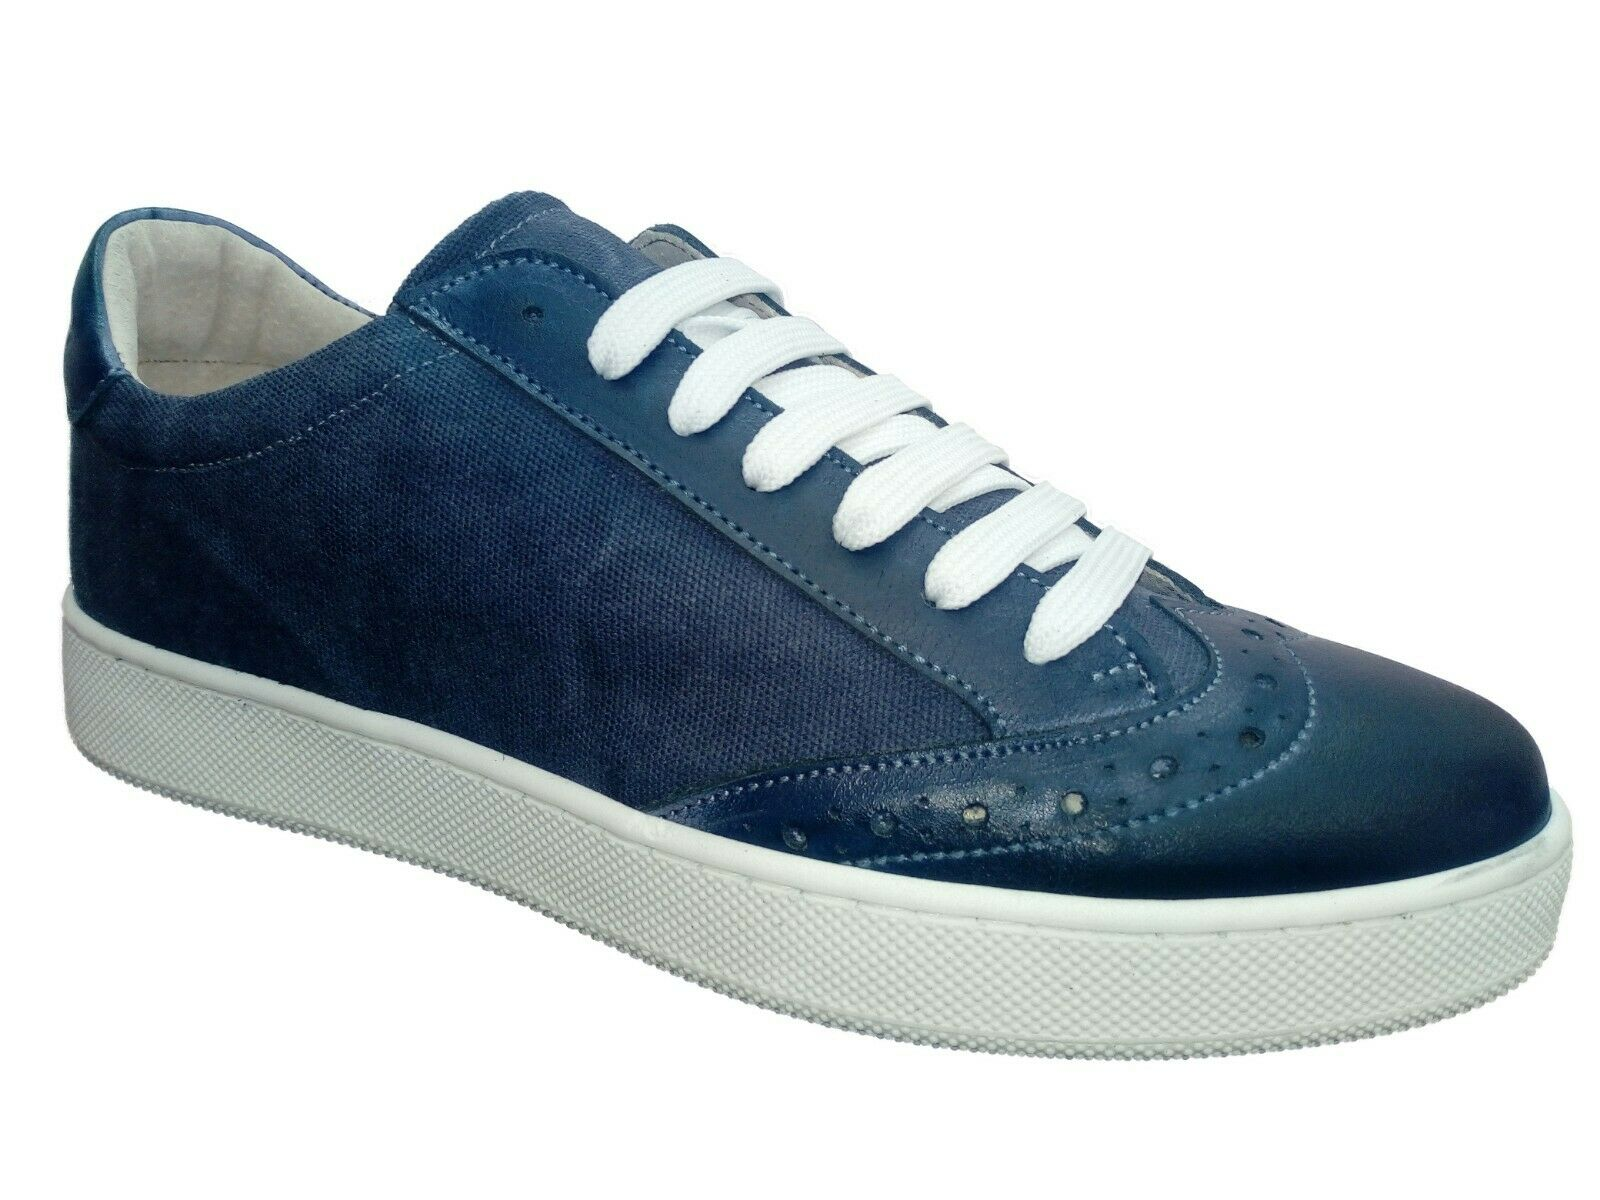 shoes da men Casual tg 42 WEENCHESTER made in  in tessuto e pelle blue